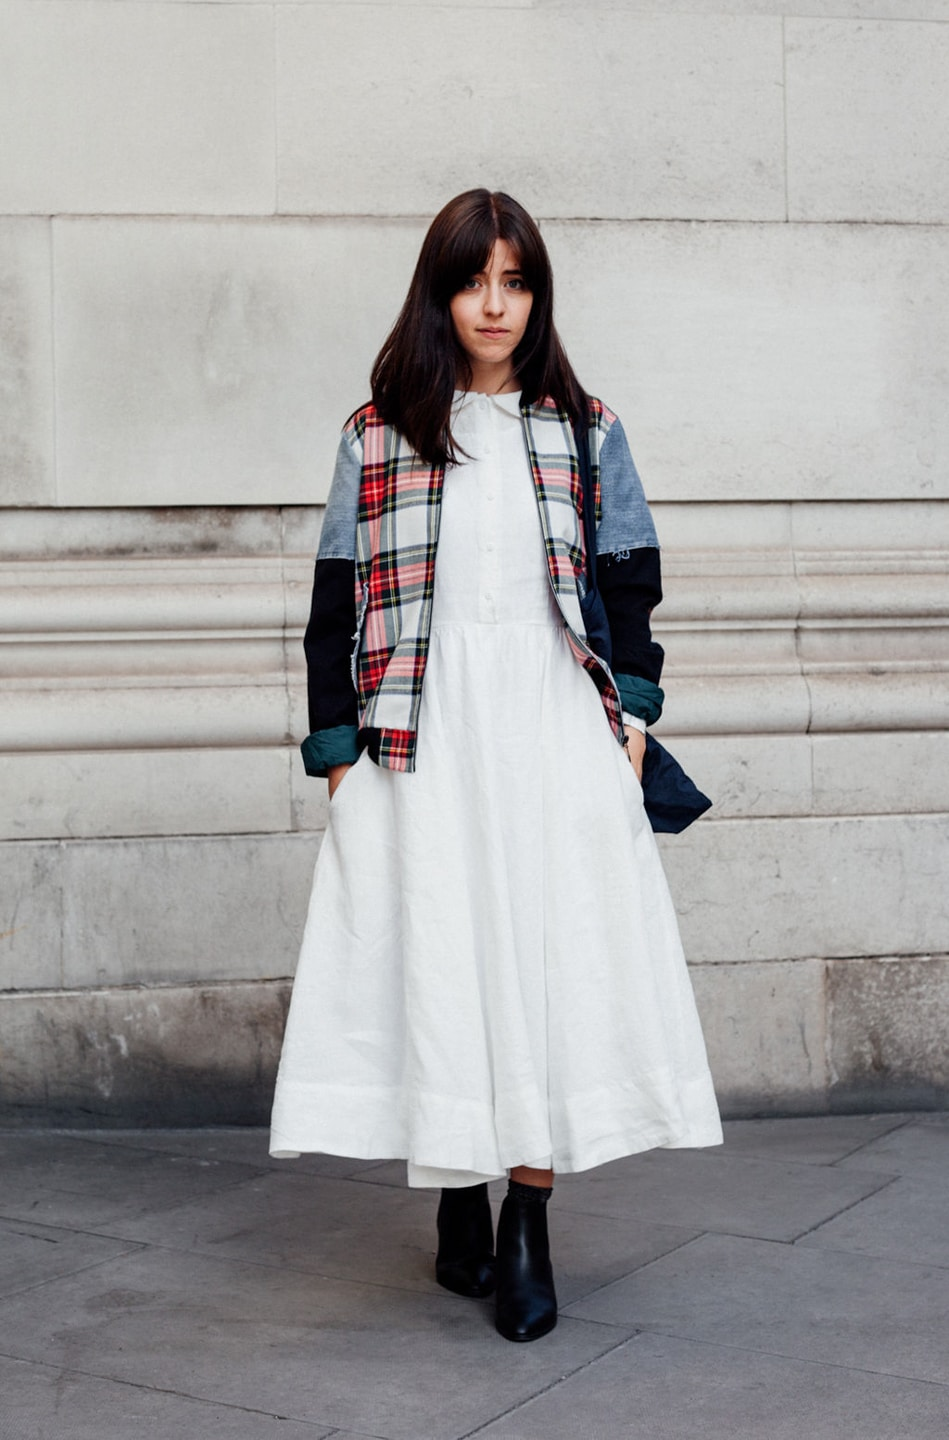 Besma wears white dress with patchwork jacket